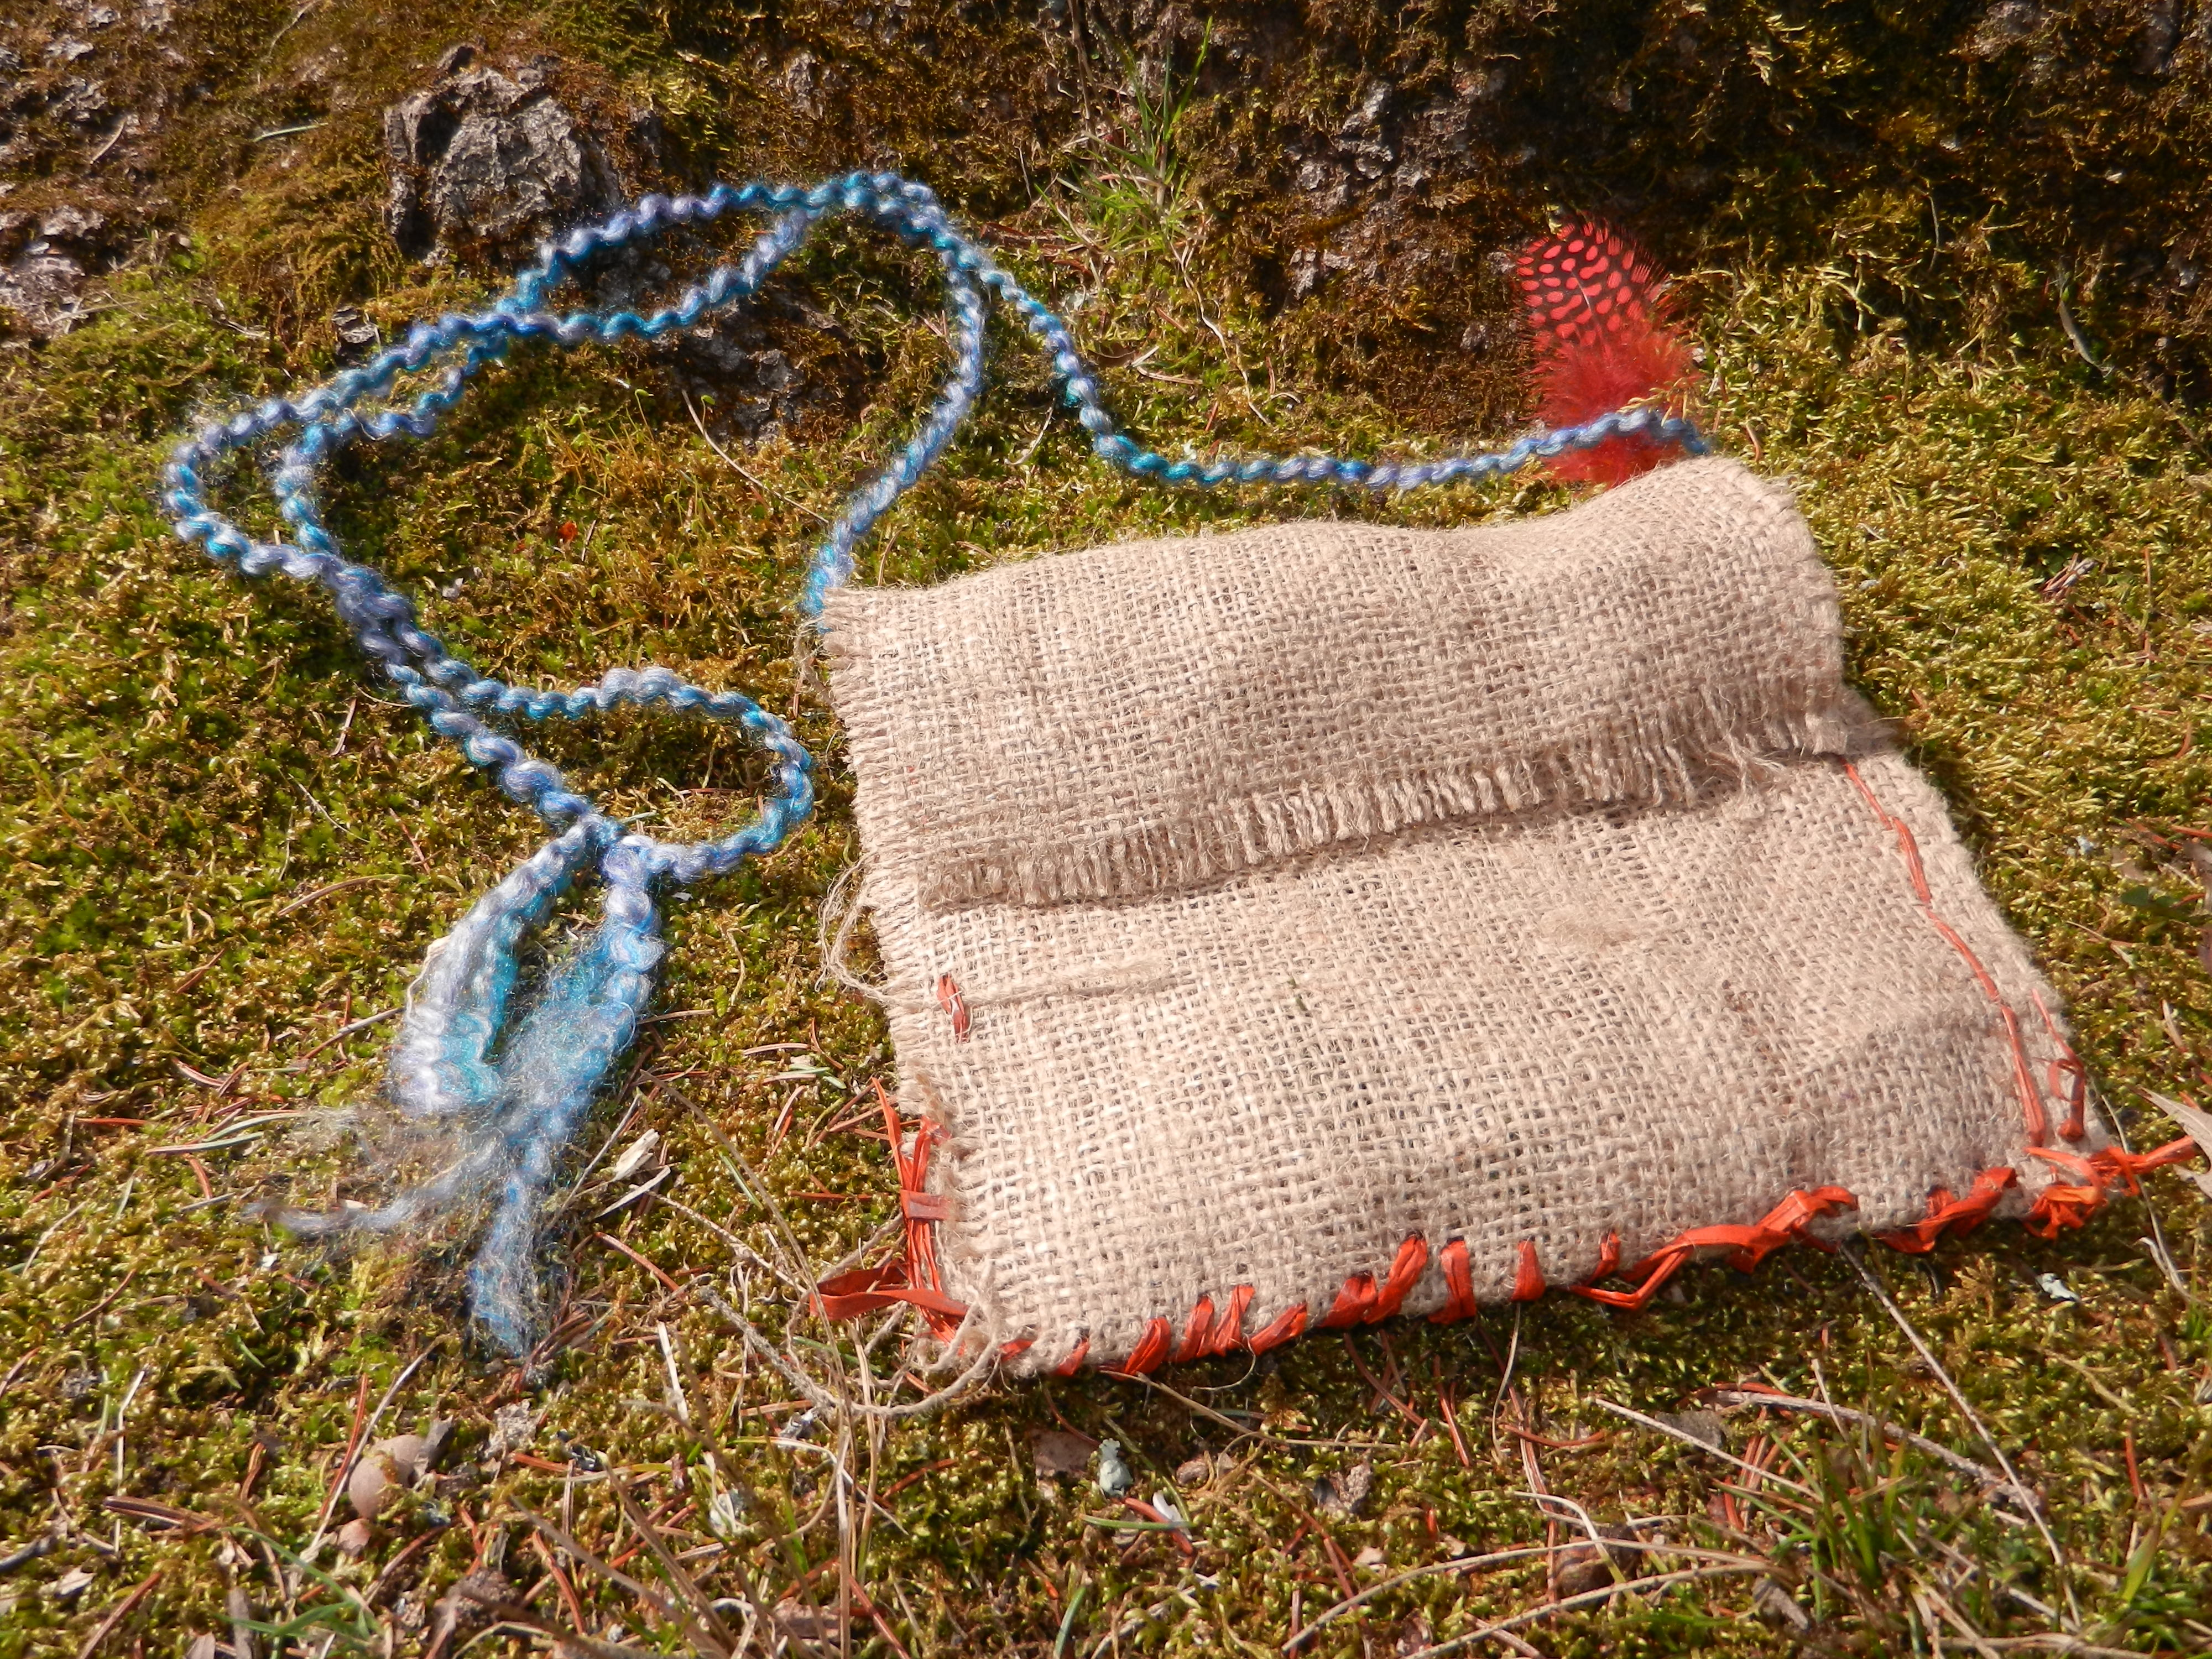 30 Minute Medicine Bag Native American Craft Nature Into Action